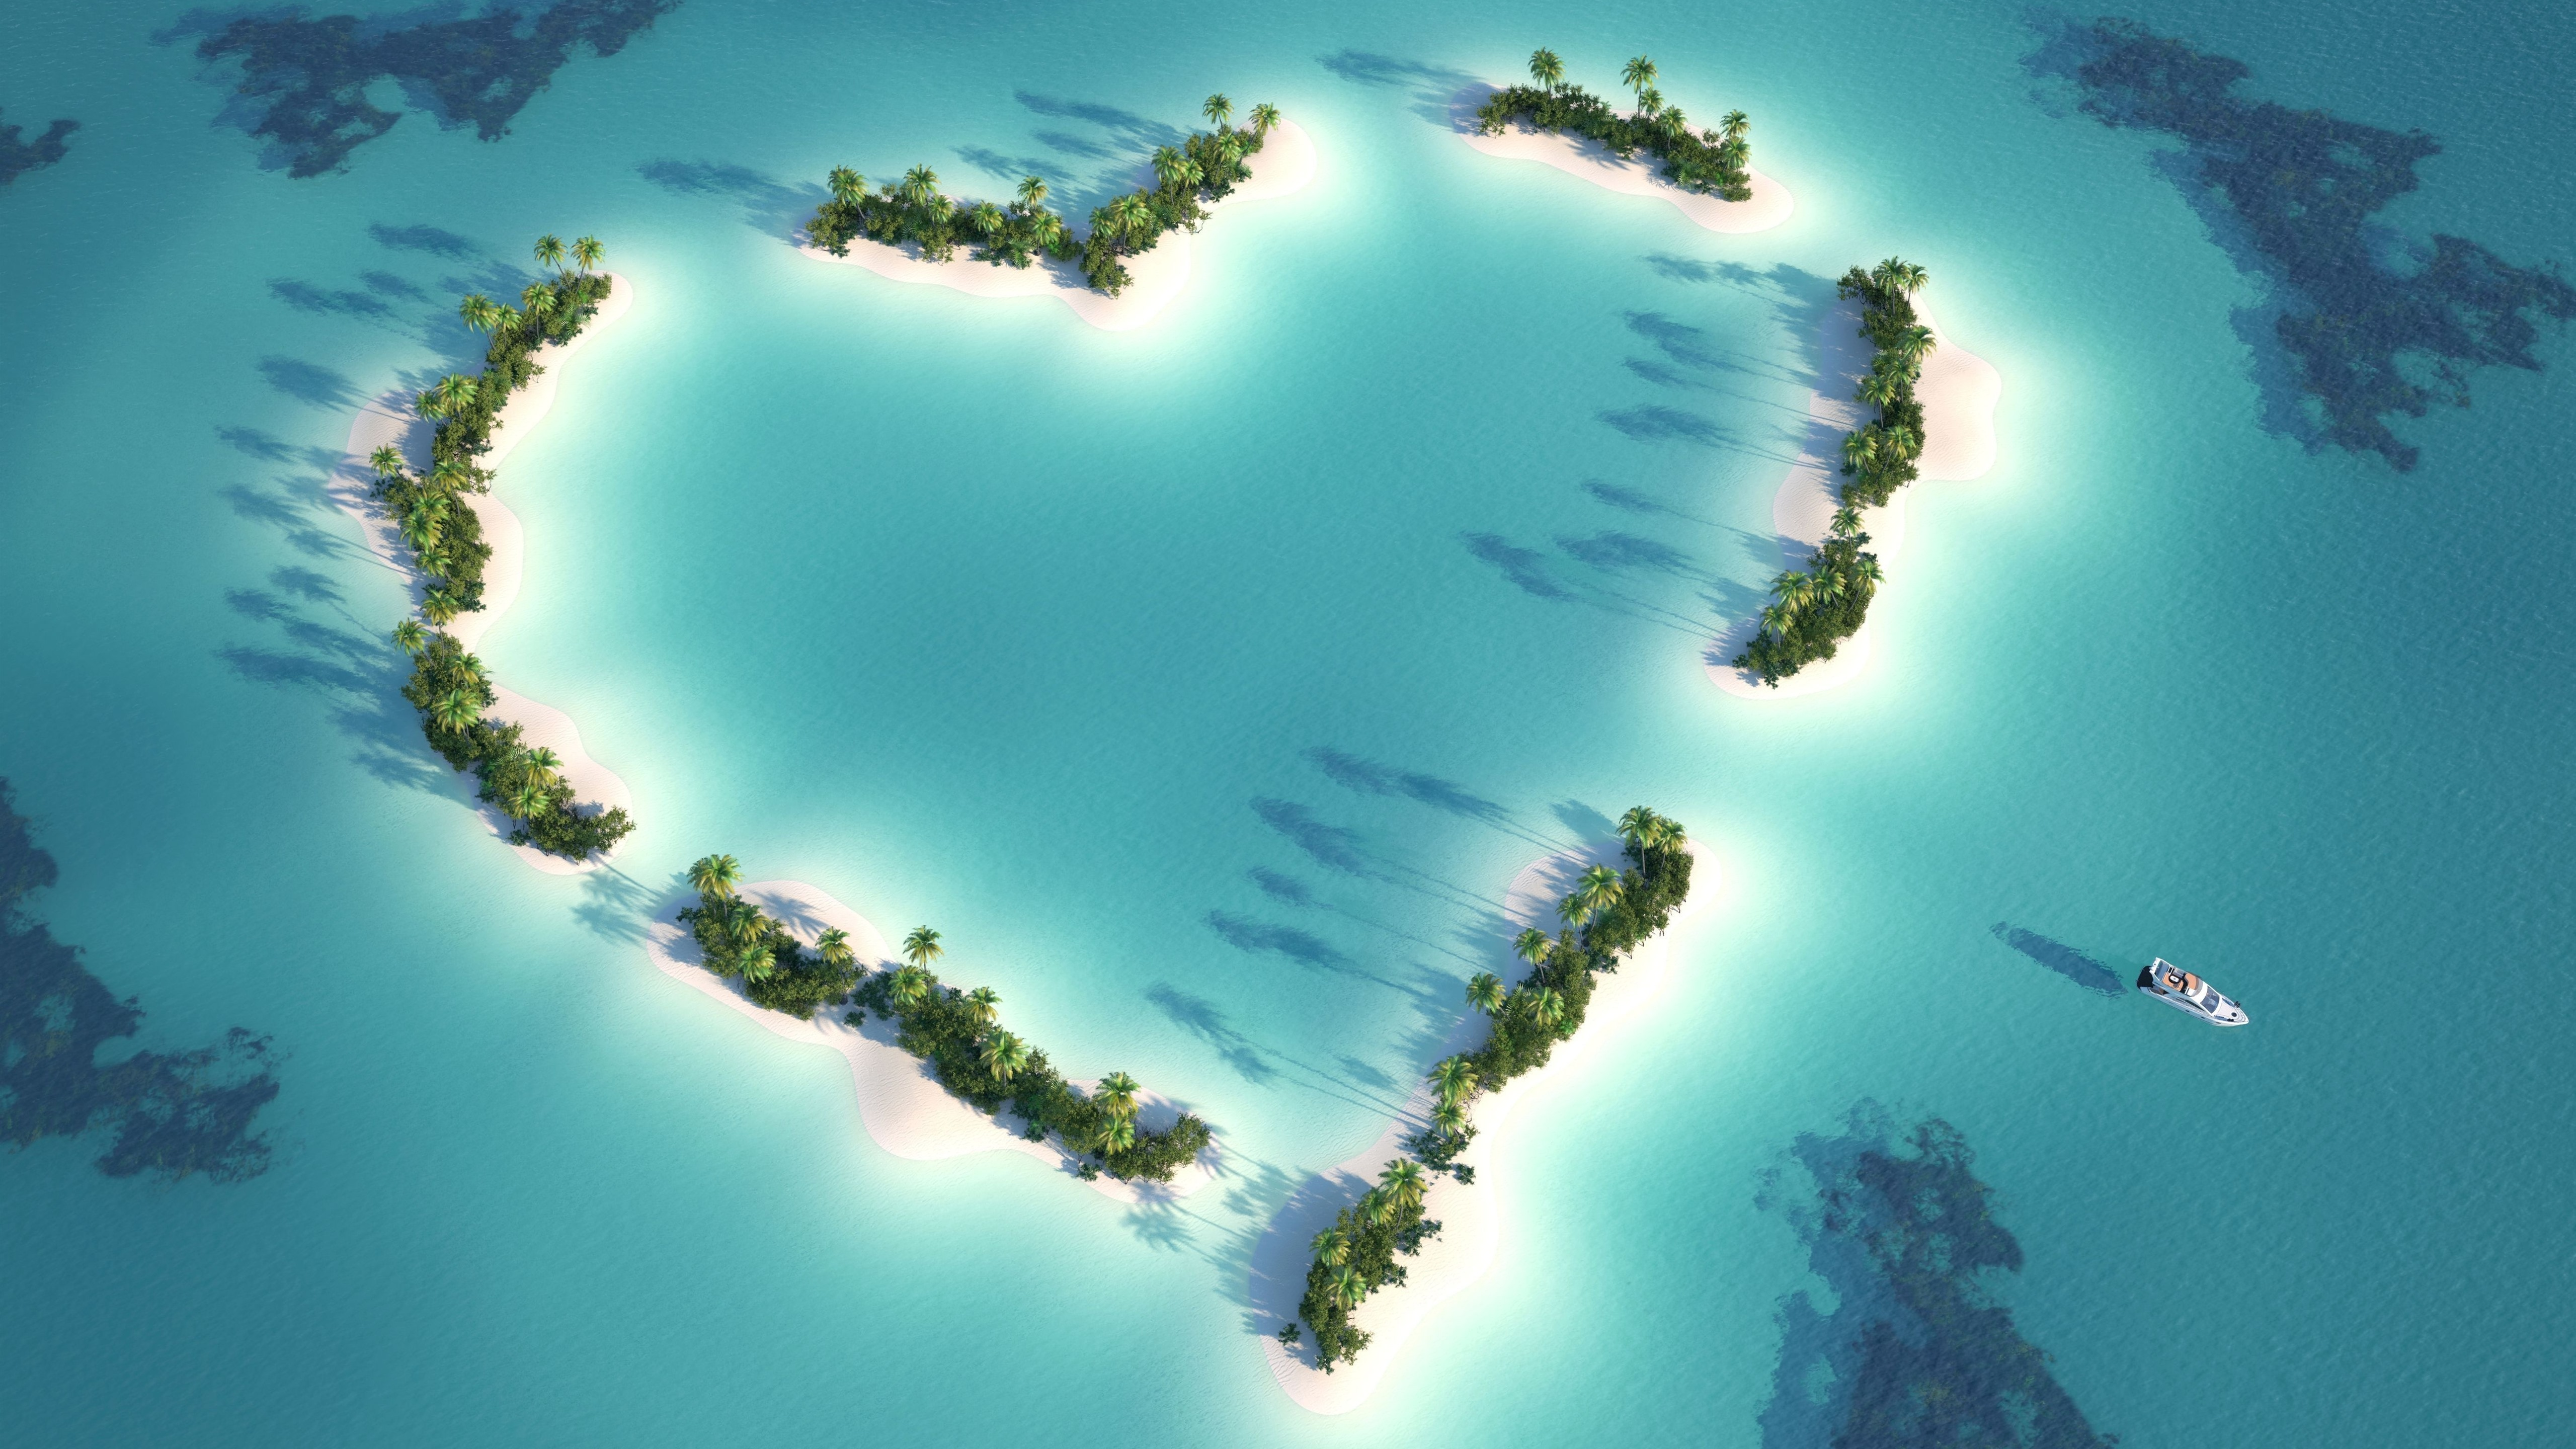 Wallpaper Love Heart Beach Sea Palm Trees Boat Top View